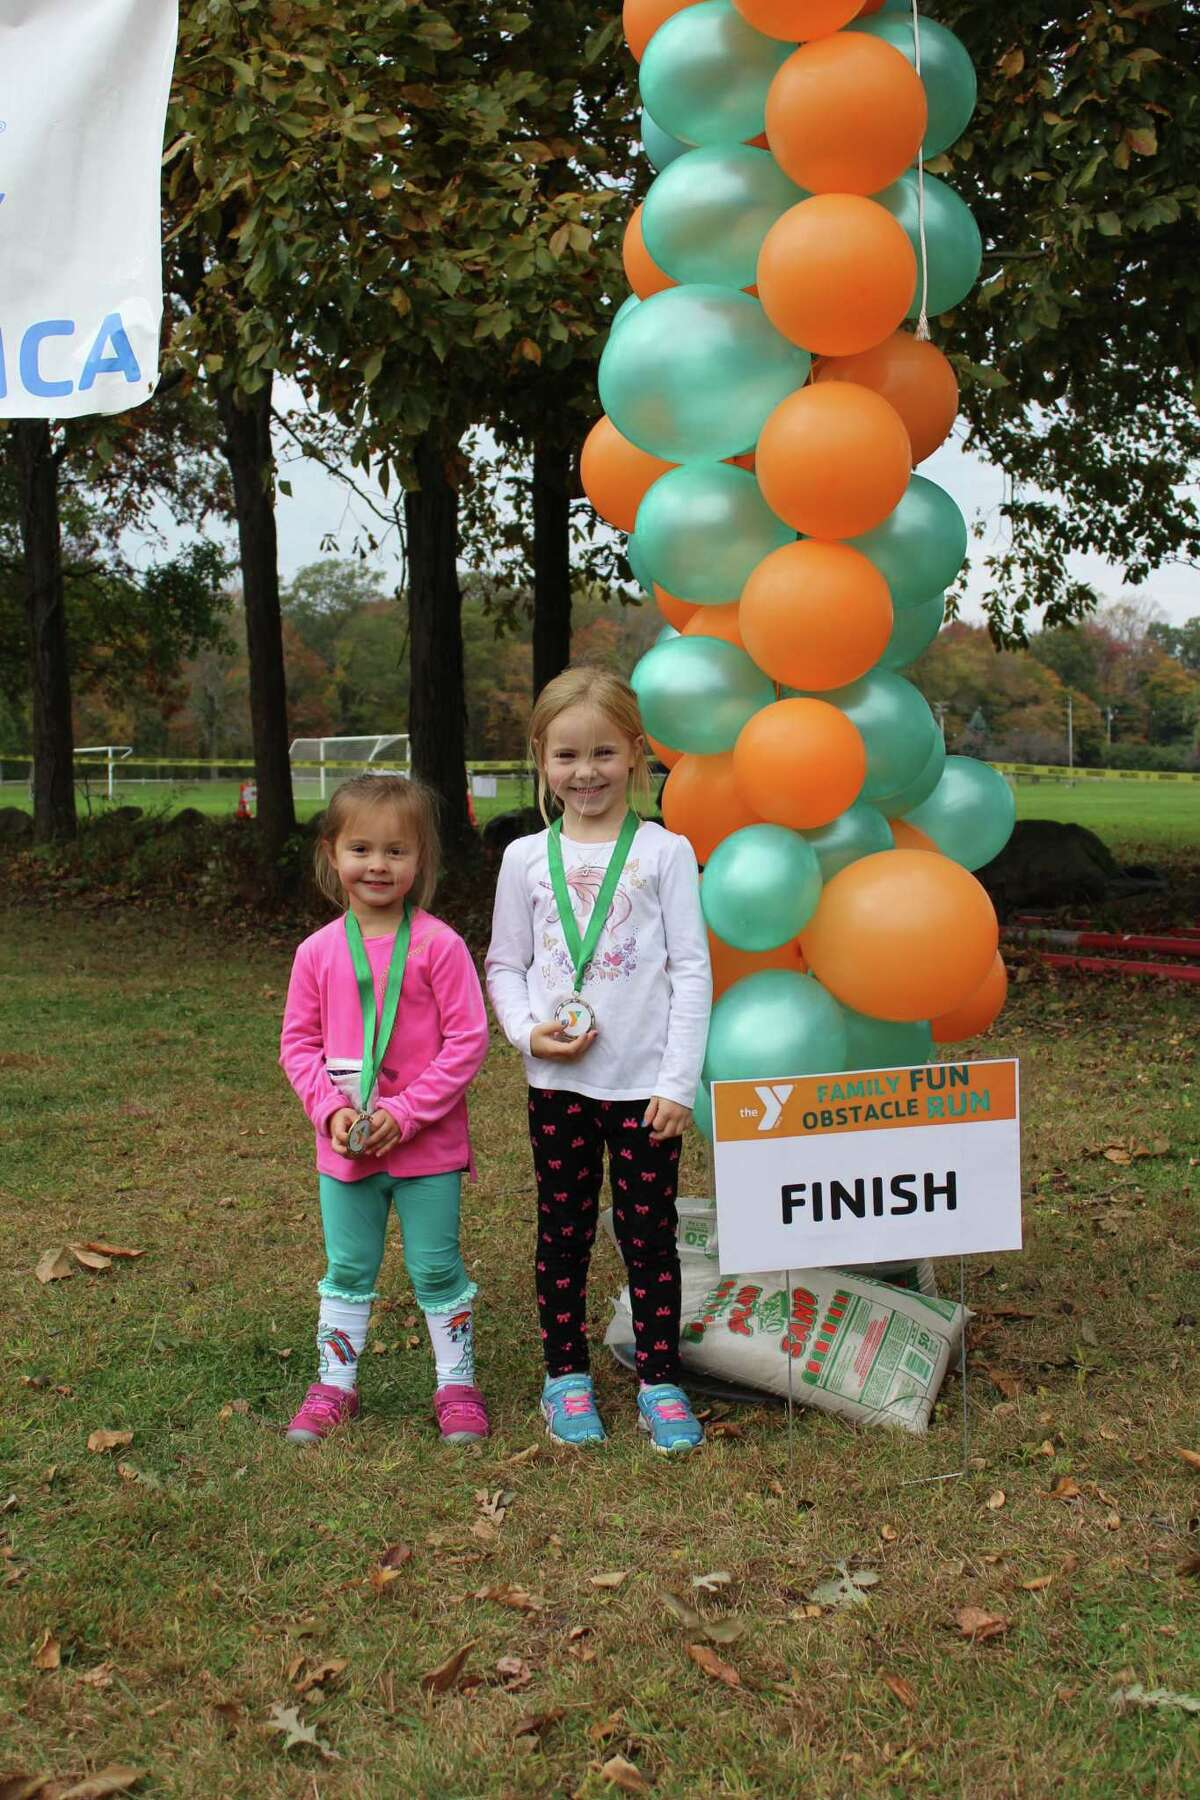 Cassidy and Callyn Stanley at the finish line.